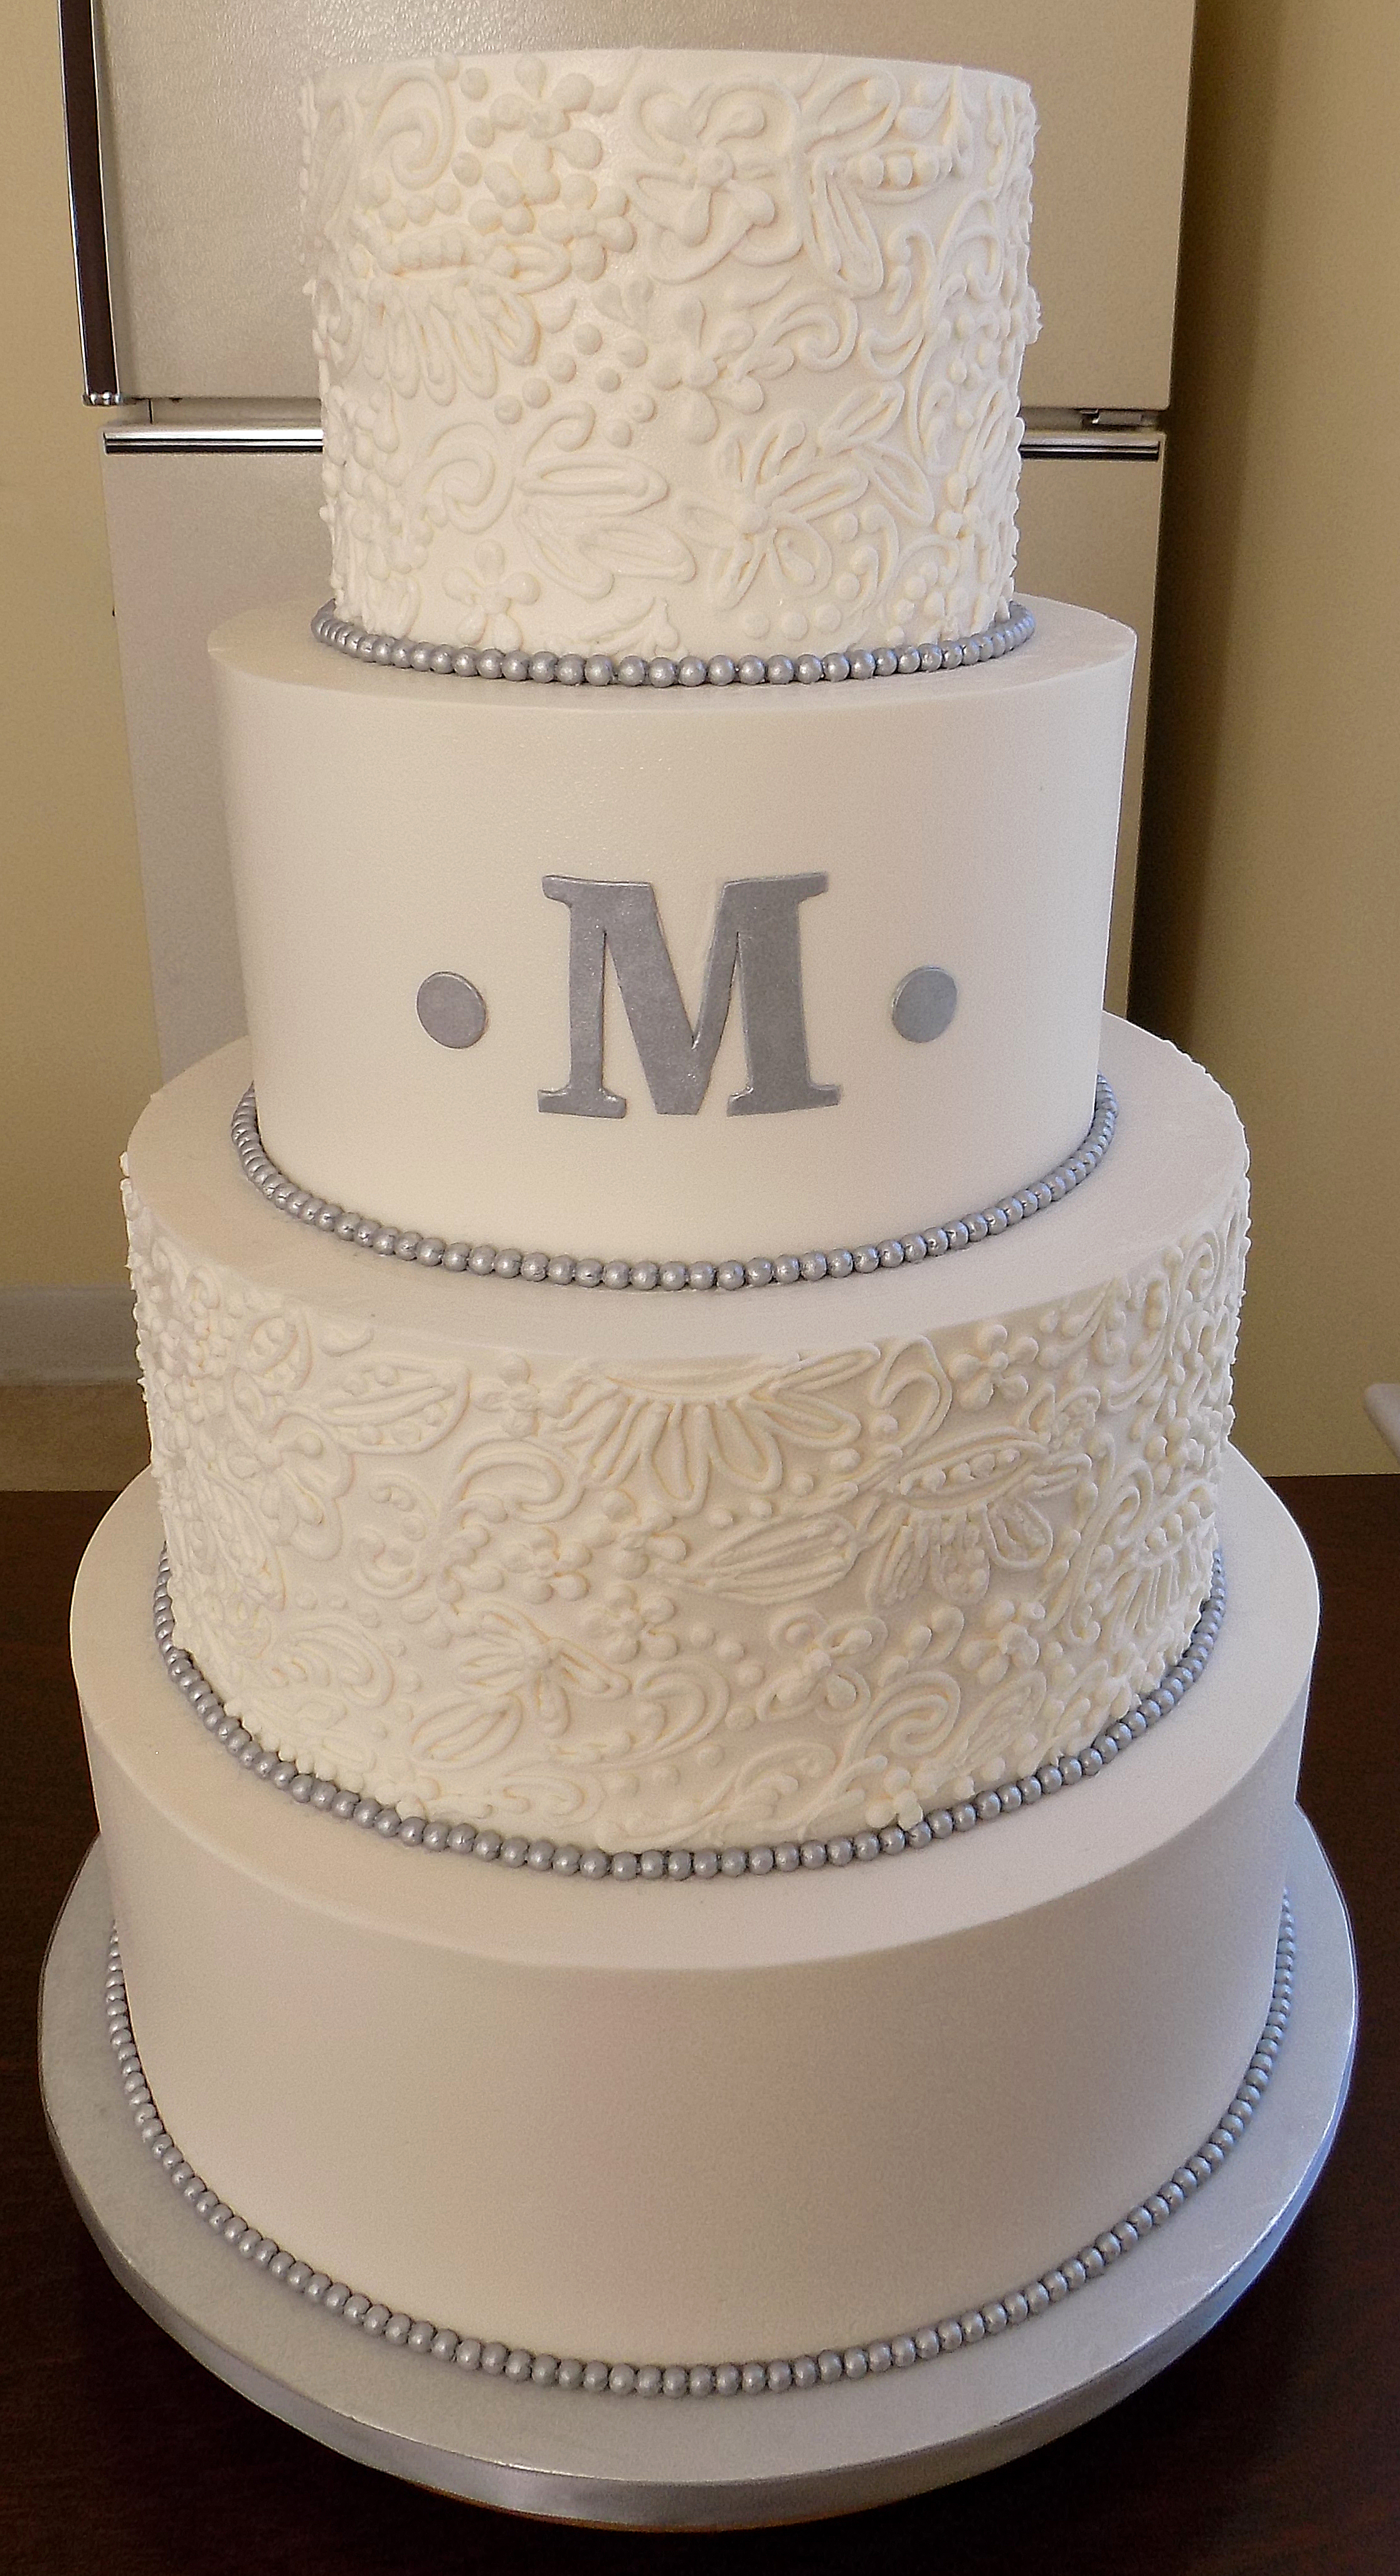 4 Tier buttercream wedding cake, decorated with buttercream lace designs, silver fondant pearl borders and a silver M monogram delivered at Wyndridge Farms Dallastown PA